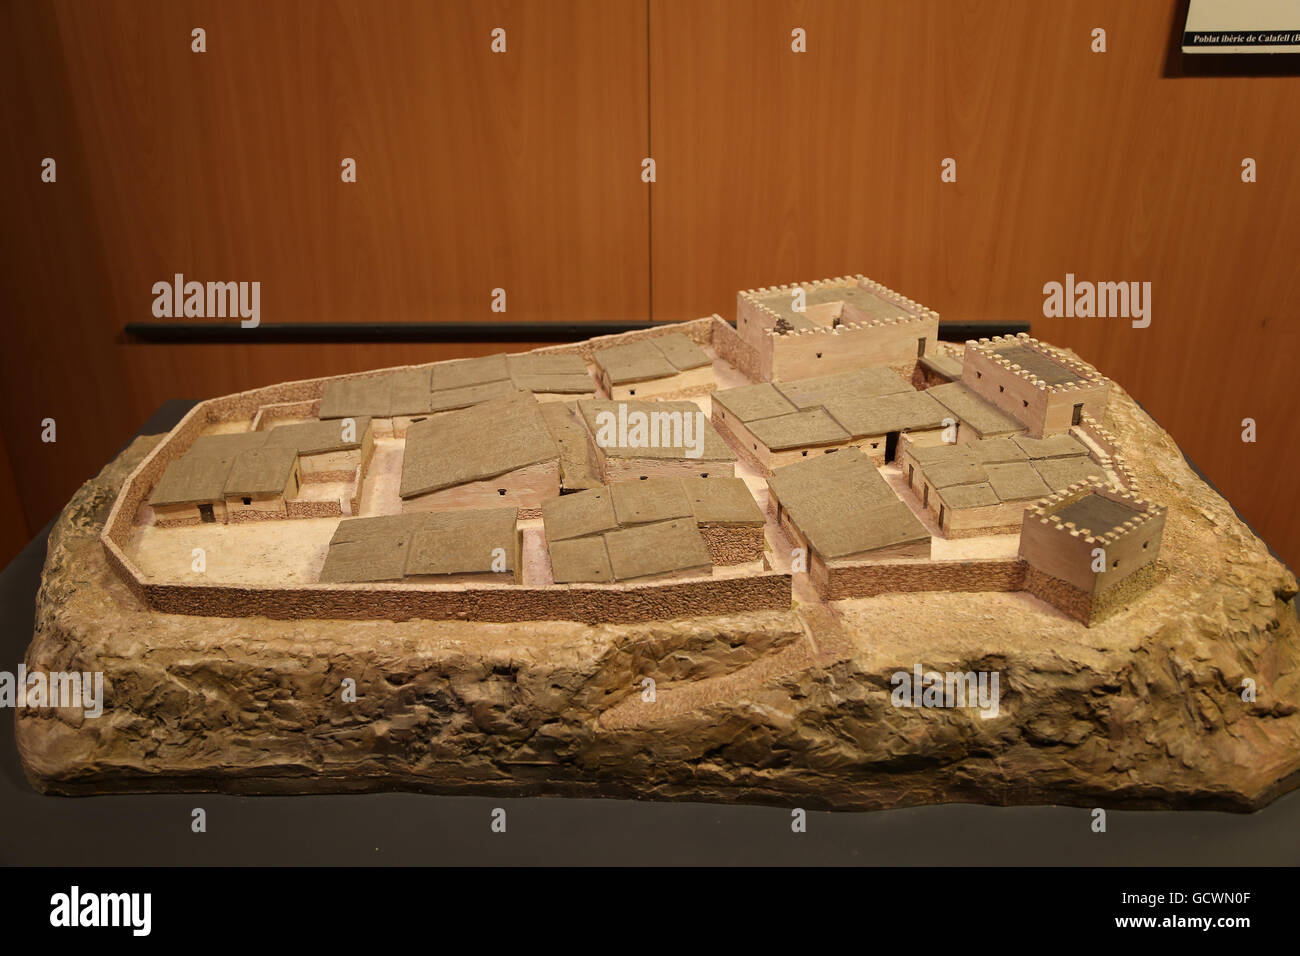 Iberian citadel of Calafell. Reproduction. Model. 3rd century BC. Museum of the History of Catalonia, Barcelona. - Stock Image